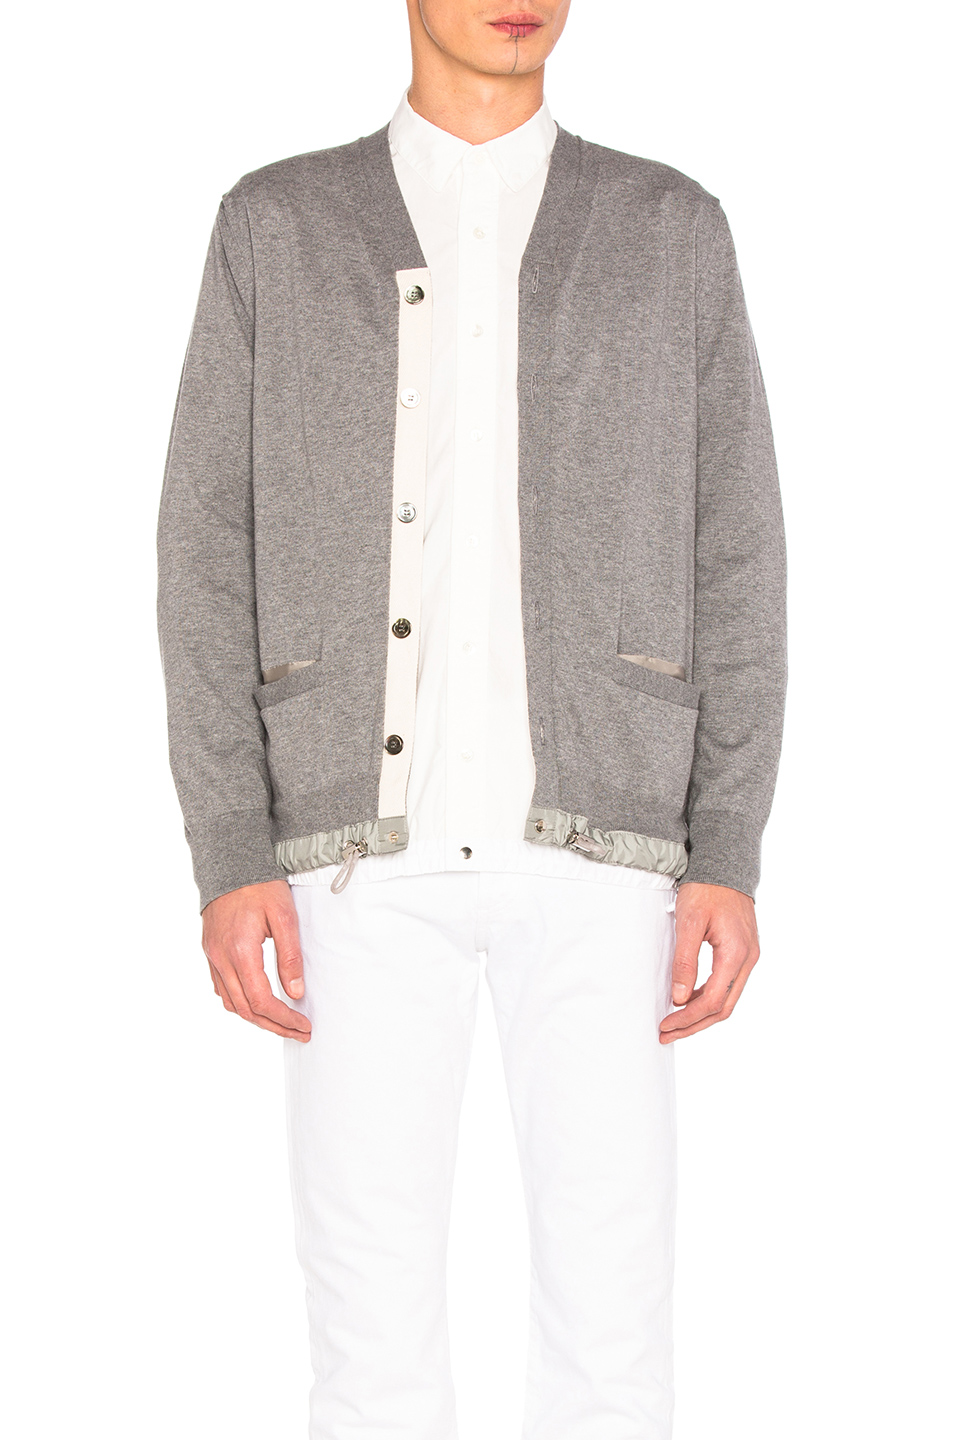 Sacai Cotton Cashmere Knit Cardigan in Gray